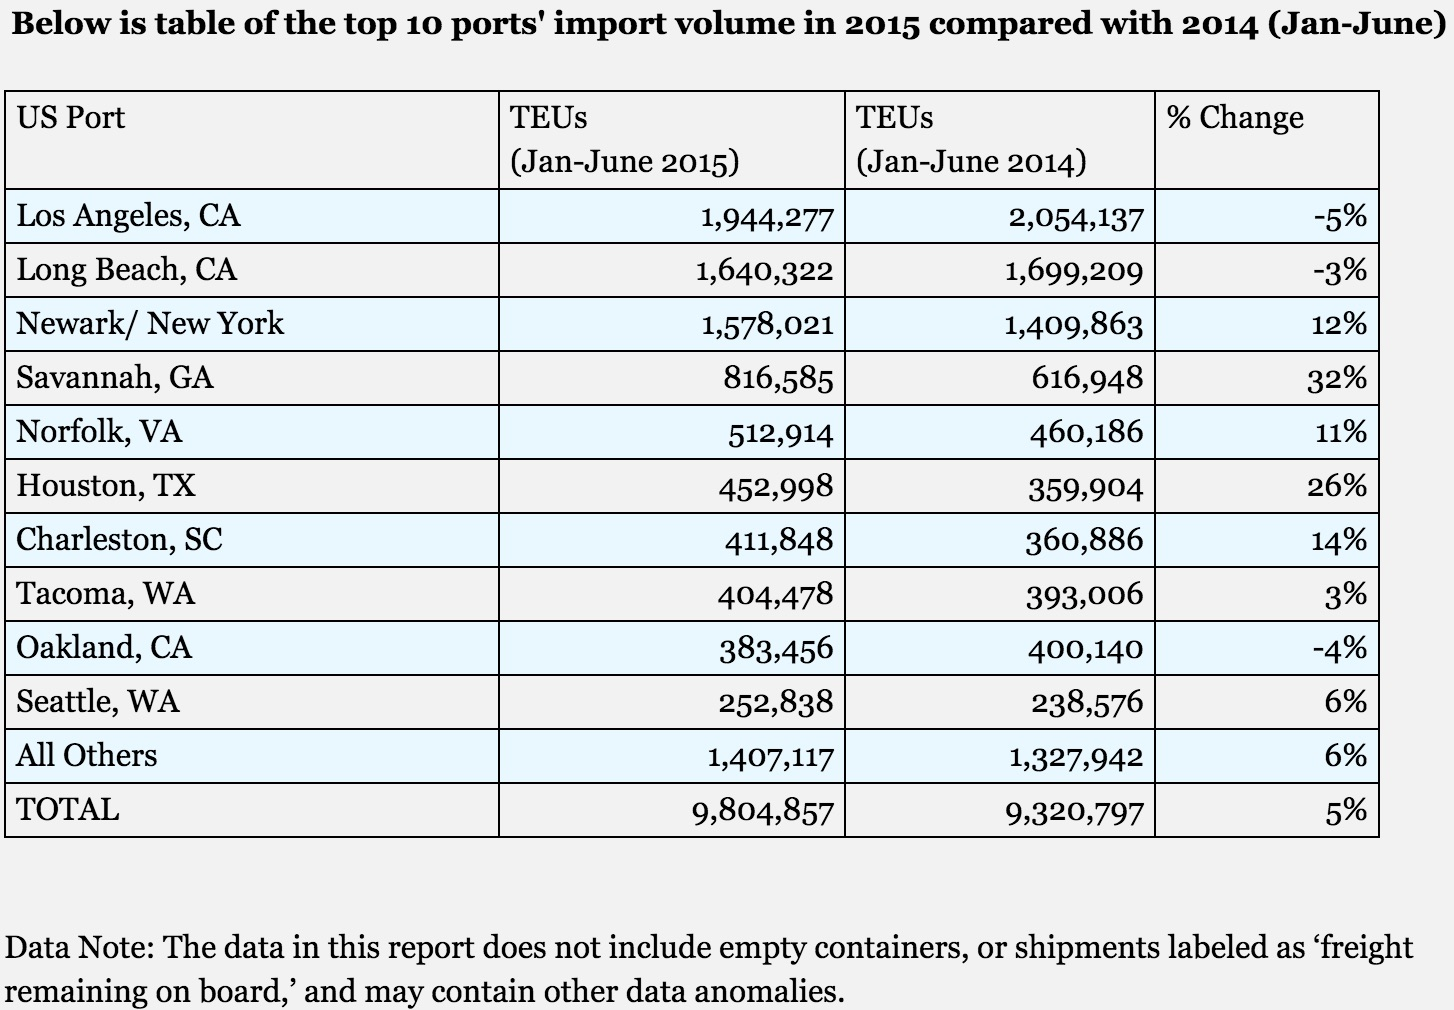 Source: http://www.zepol.com/blog/post/2015/7/15/imports-moving-to-the-east-coast.aspx